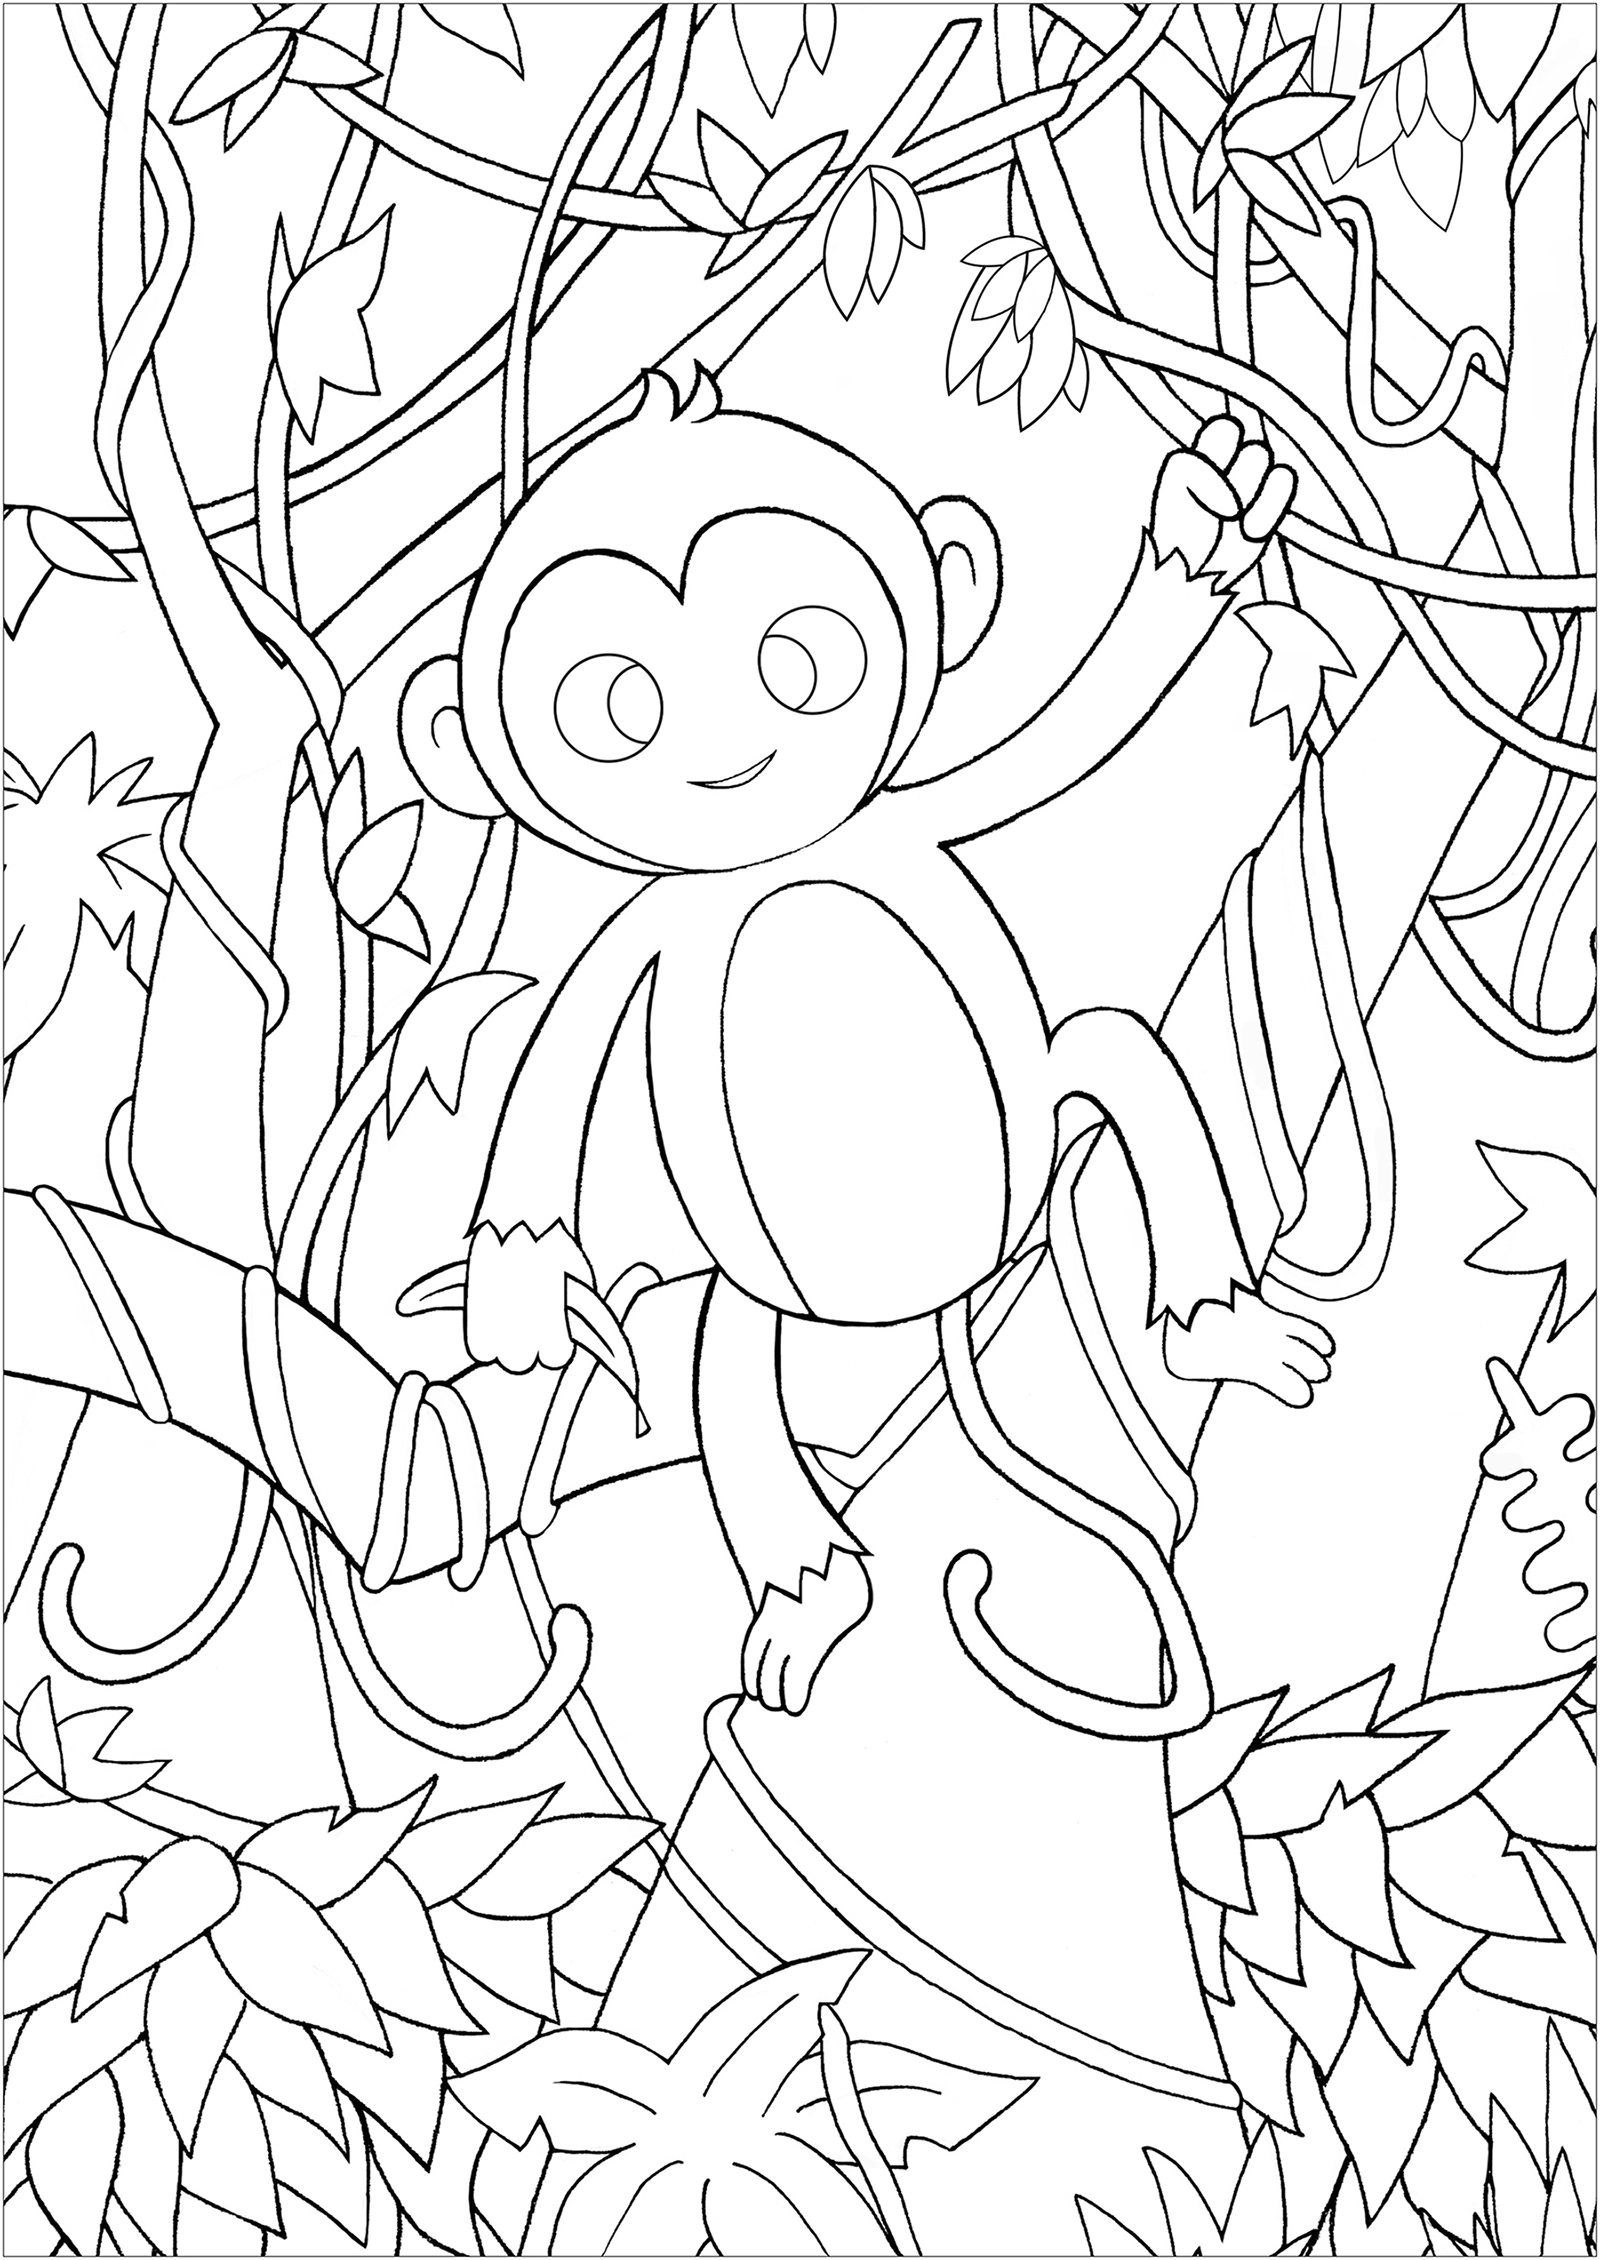 A cute monkey among the lianas, leaves and branches of the jungle